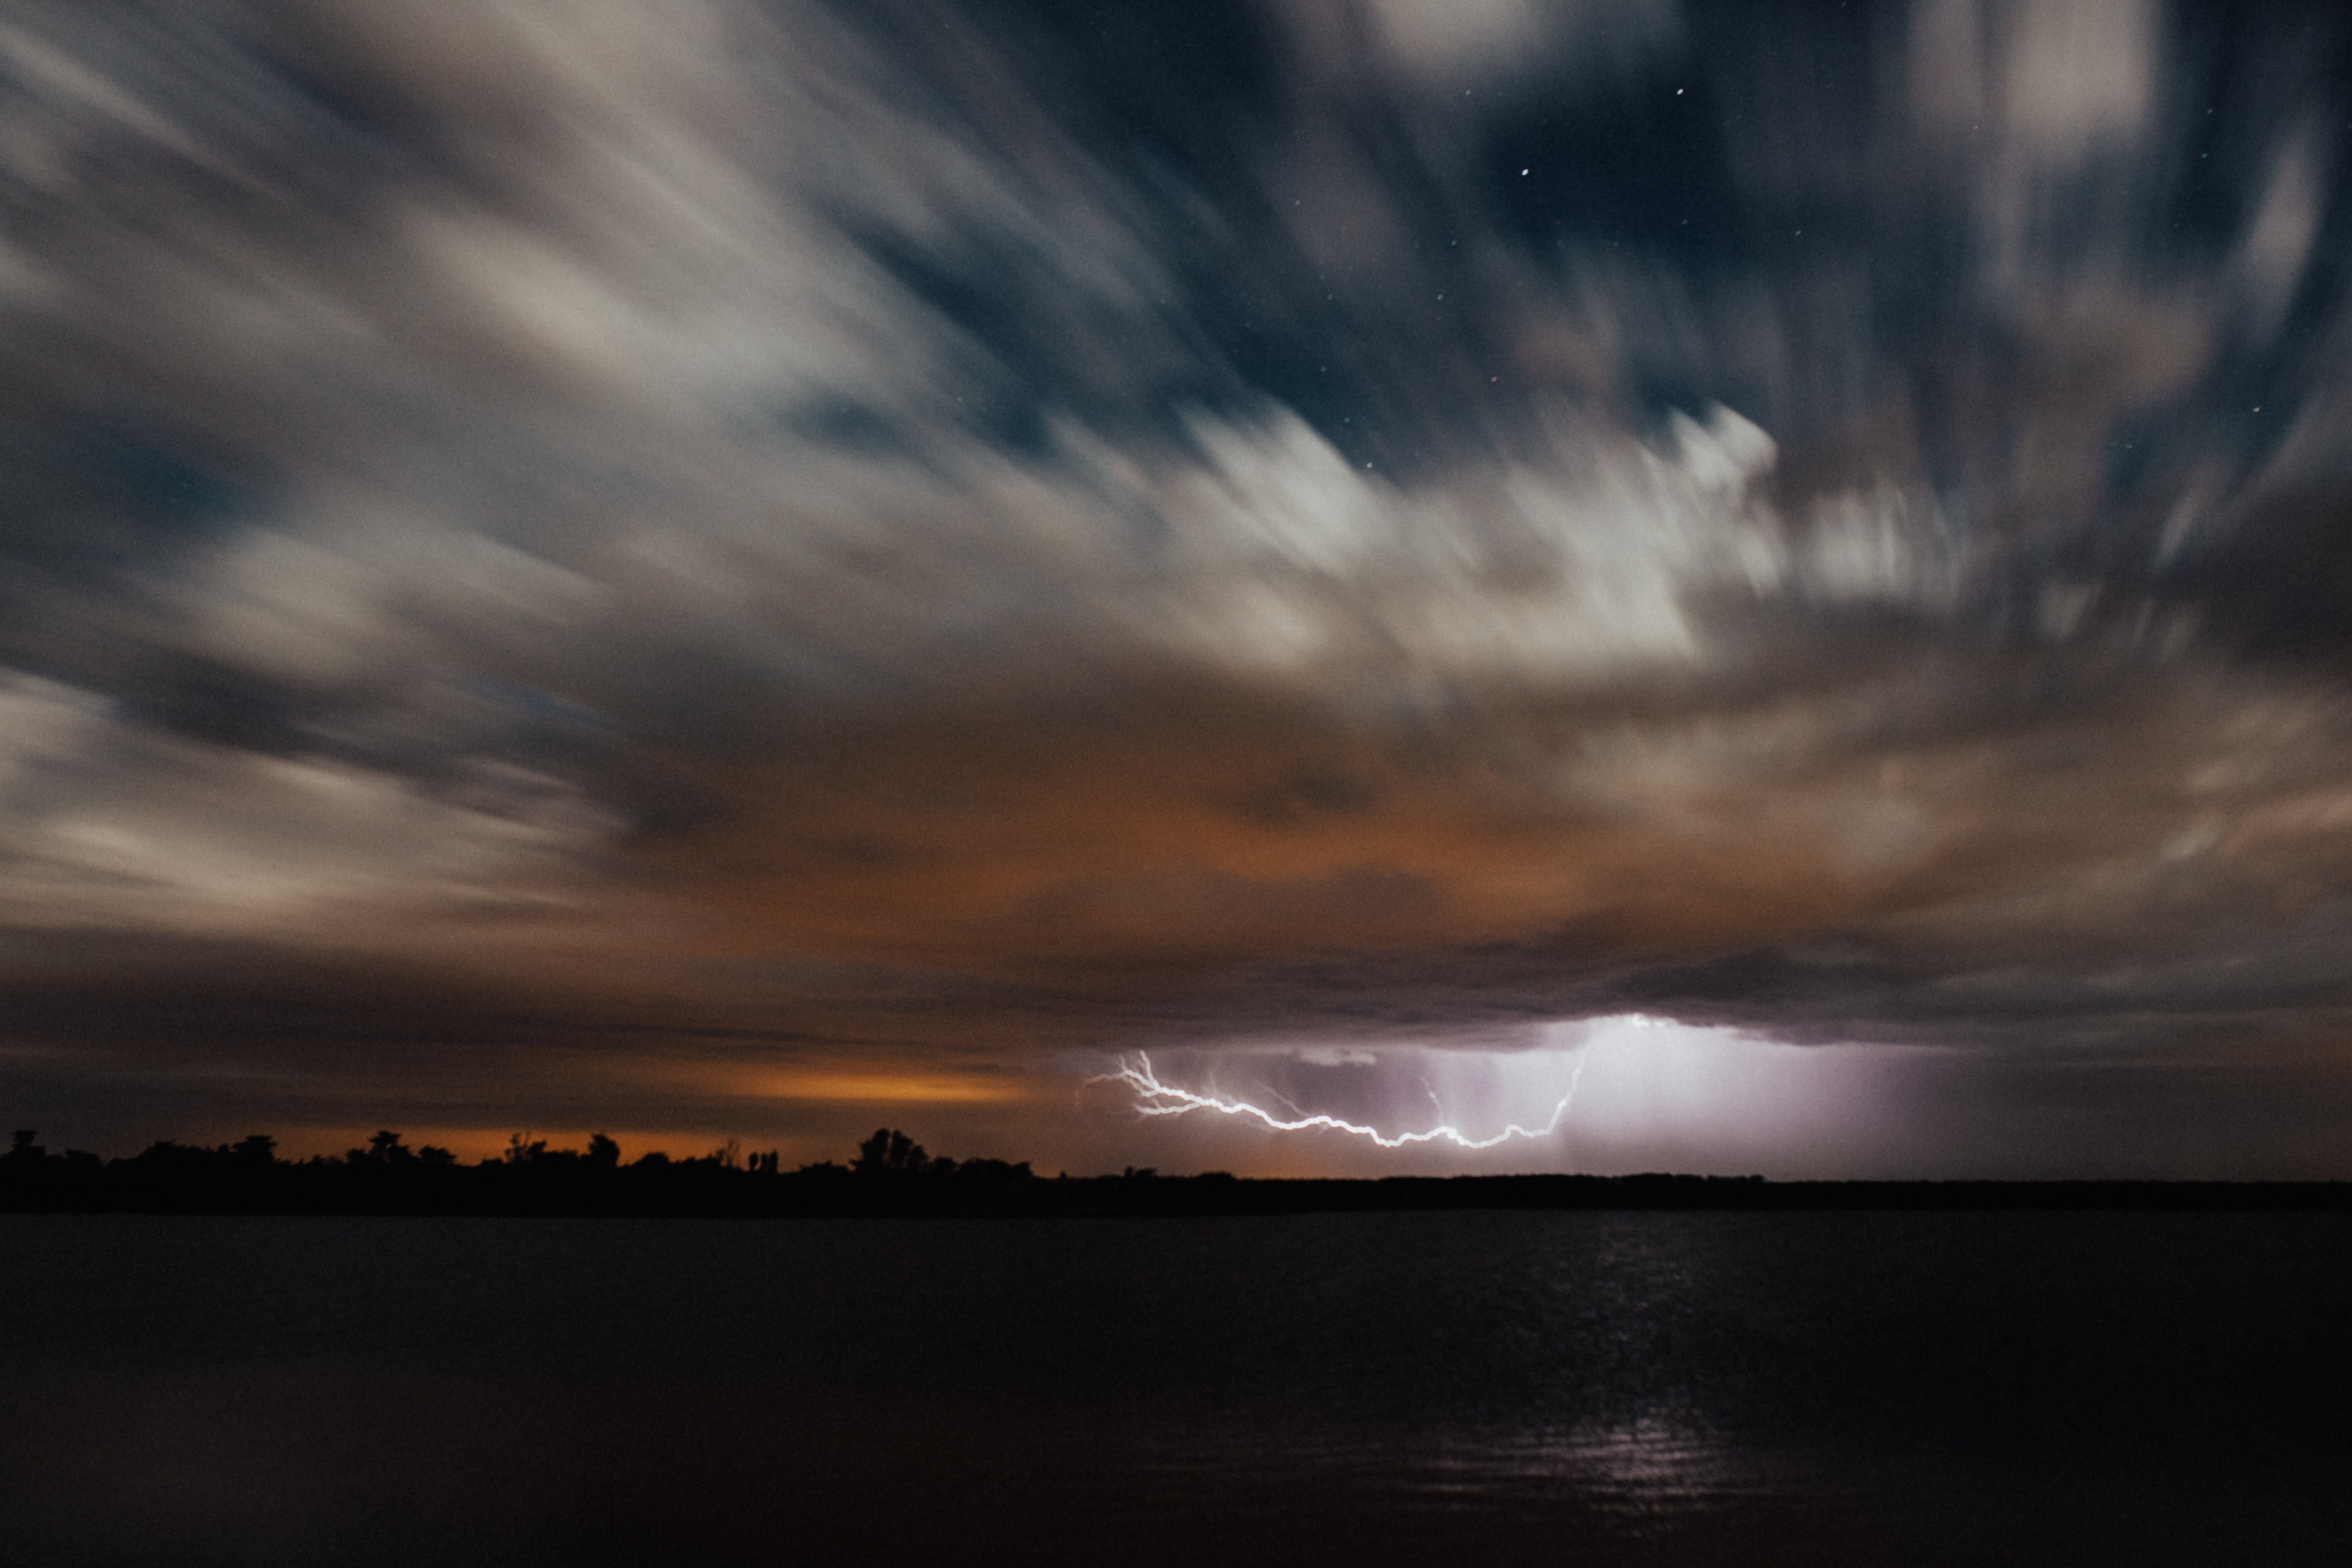 time lapsed photo of lightning during nighttime